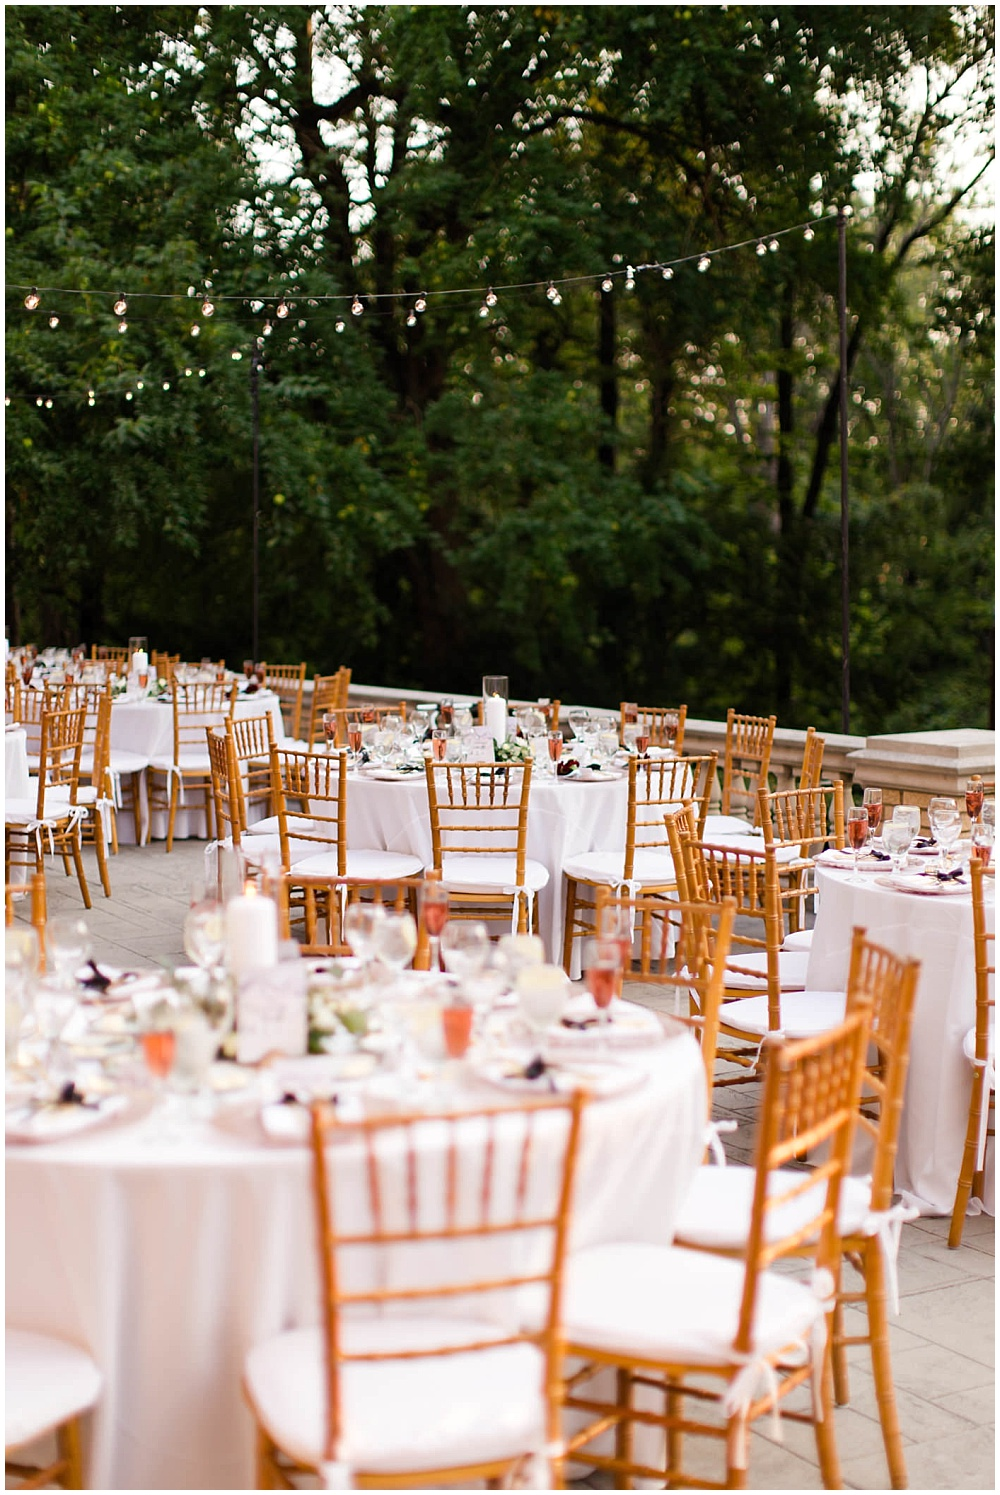 rose toast with lavender sprig; rose gold chargers; gold flatware; mixed metallics; wedding tablescape; white wedding | Outdoor Terrace Wedding, Artfully Wed Feature; Laurel Hall - Danielle Harris Photography; Jessica Dum Wedding Coordination